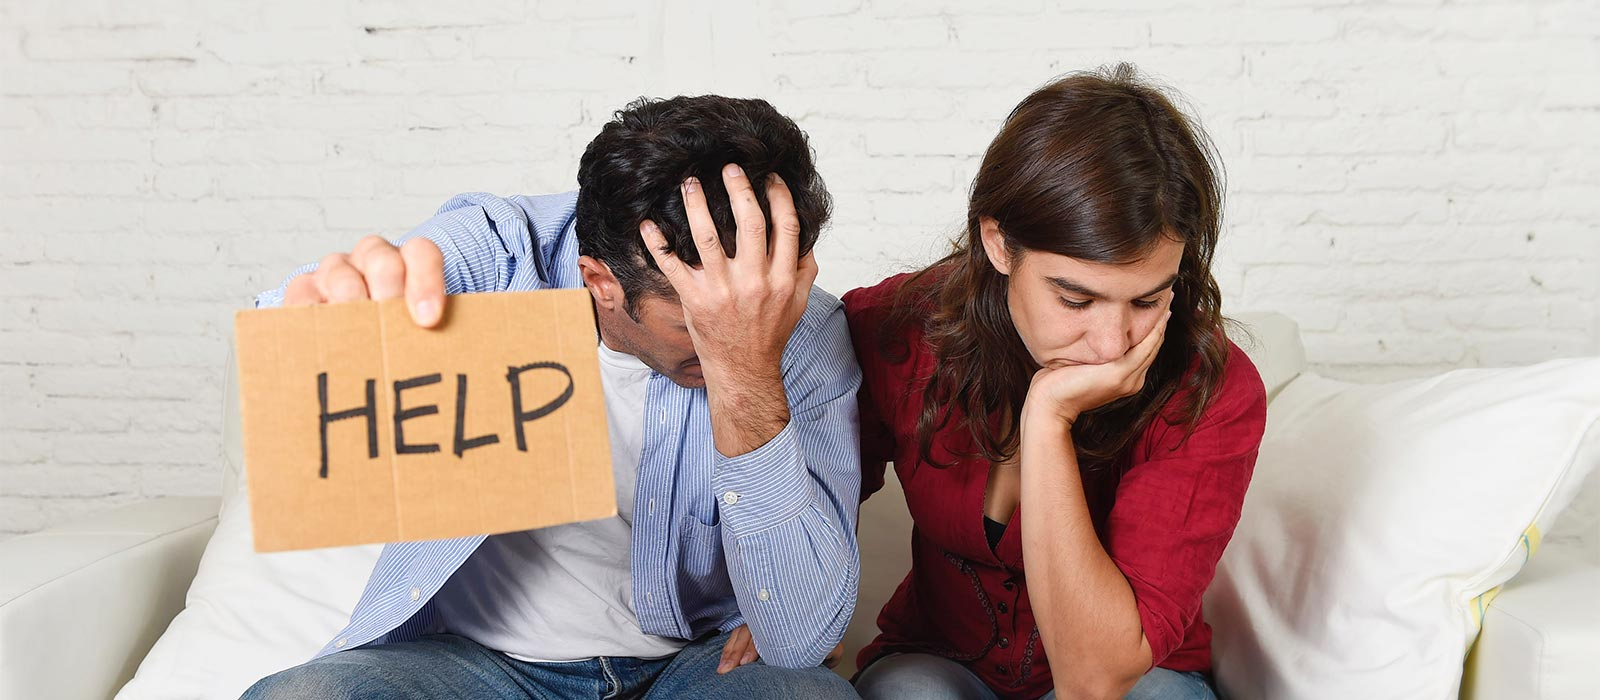 Couple worried about financial stress